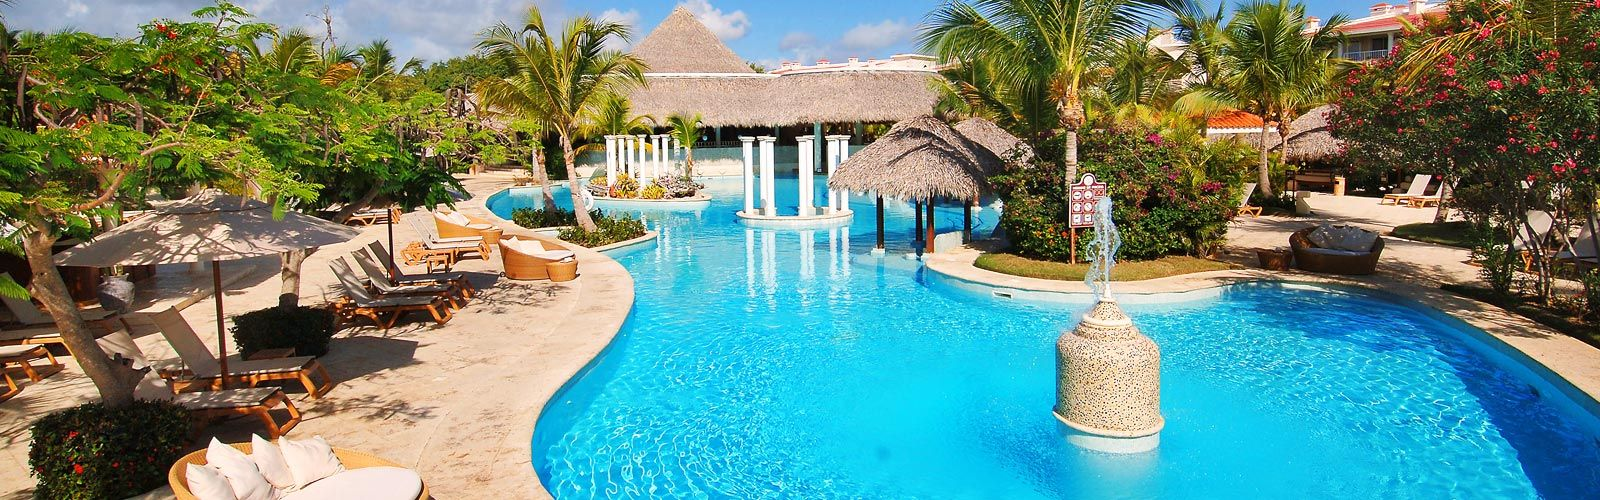 Best all inclusive family resorts melia caribe tropical dominican republic